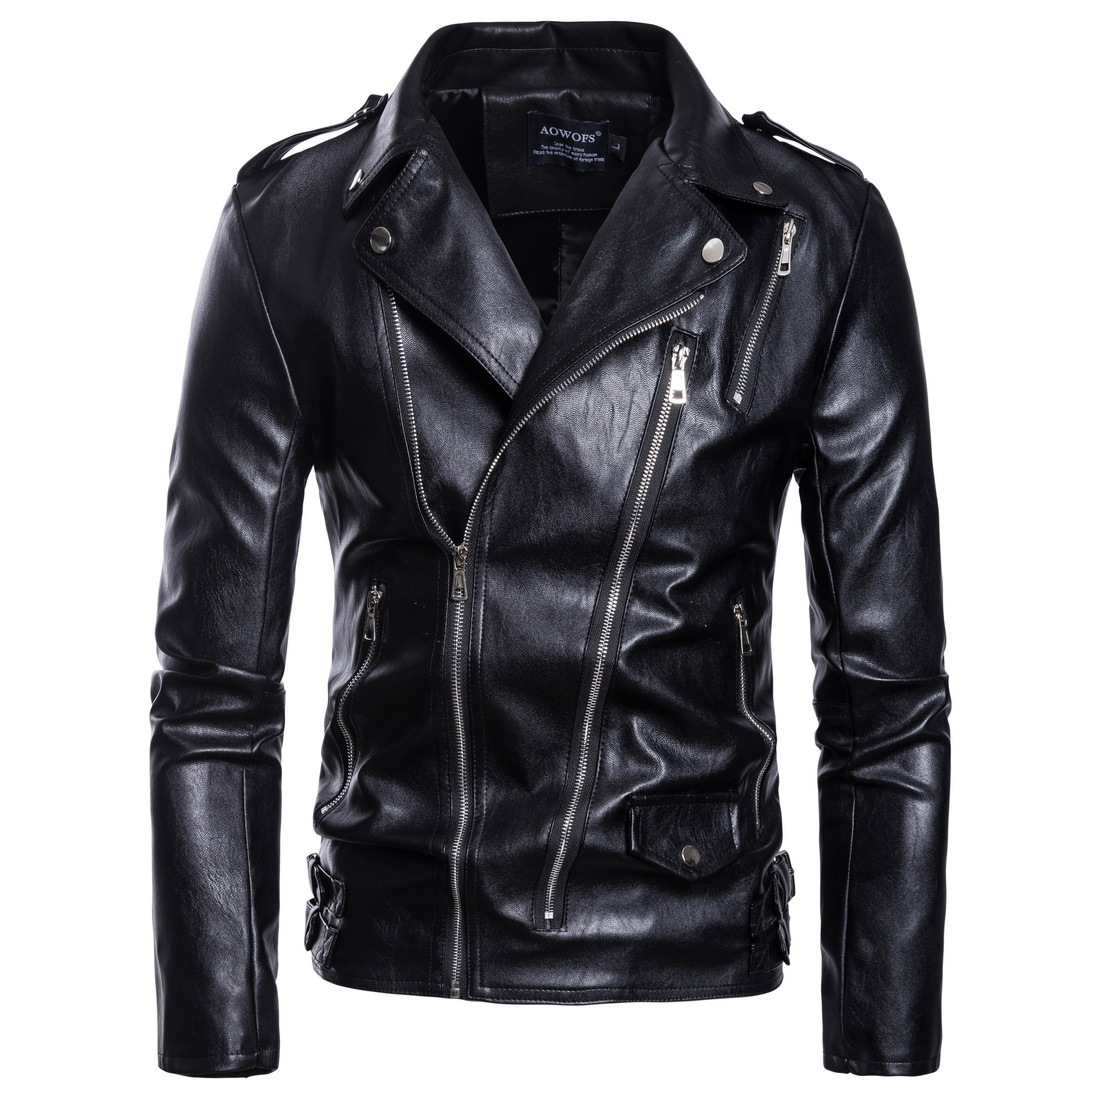 5168c3ebb US $37.15 35% OFF Black Plus Size Motorcycle Leather Jacket Men Classic  Design Multi Zippers Biker Jackets Male Bomber Leather Jackets Coats 5xl-in  ...